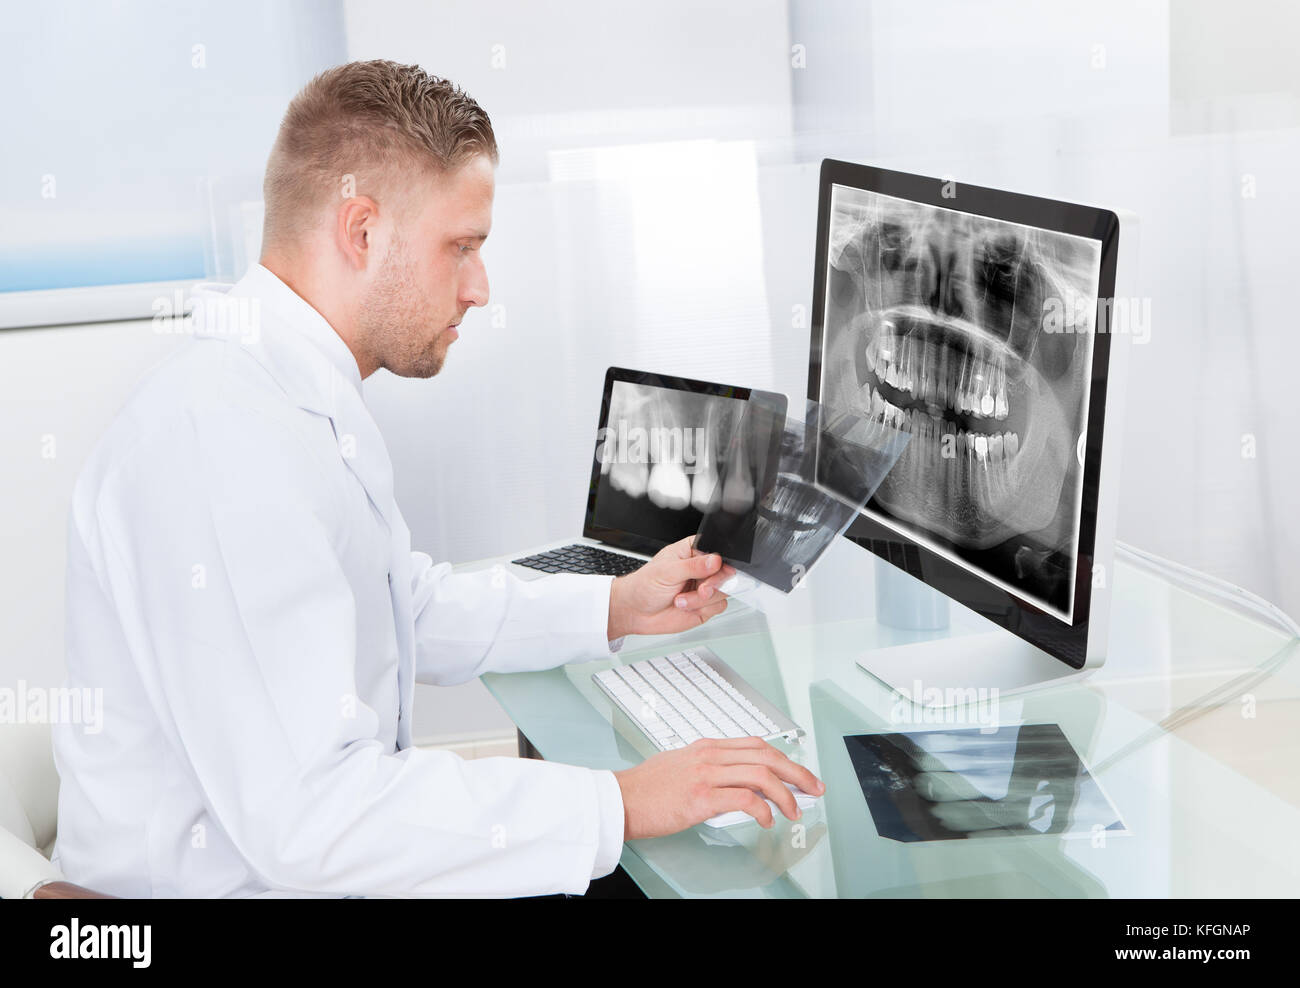 Doctor or radiologist looking at an x-ray online displayed on a desktop monitor as he makes a diagnosis or checks - Stock Image